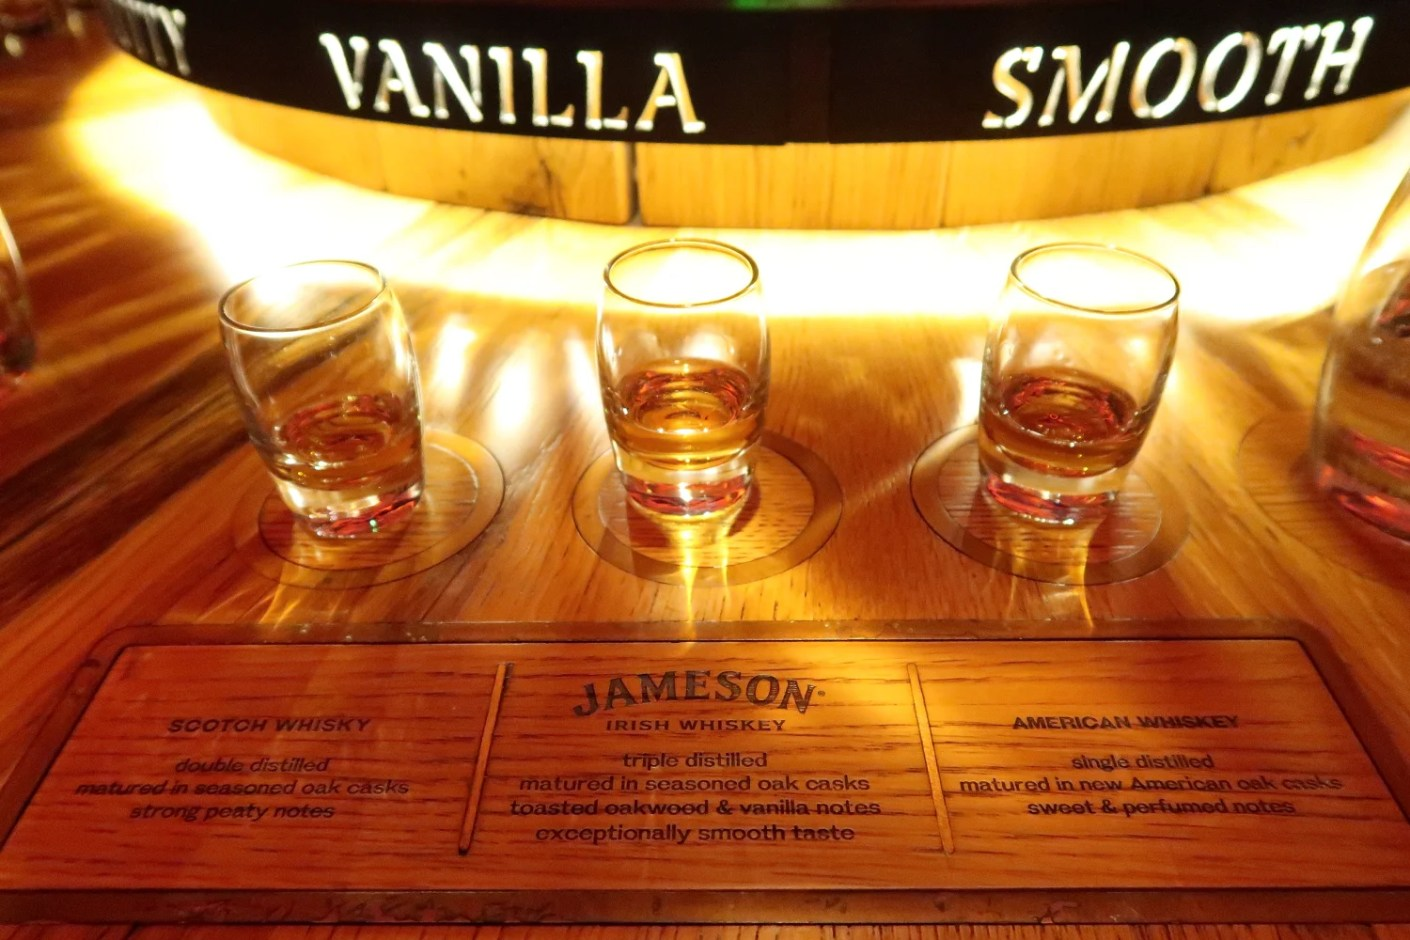 We tasted and compared three styles of whiskey during our tour.